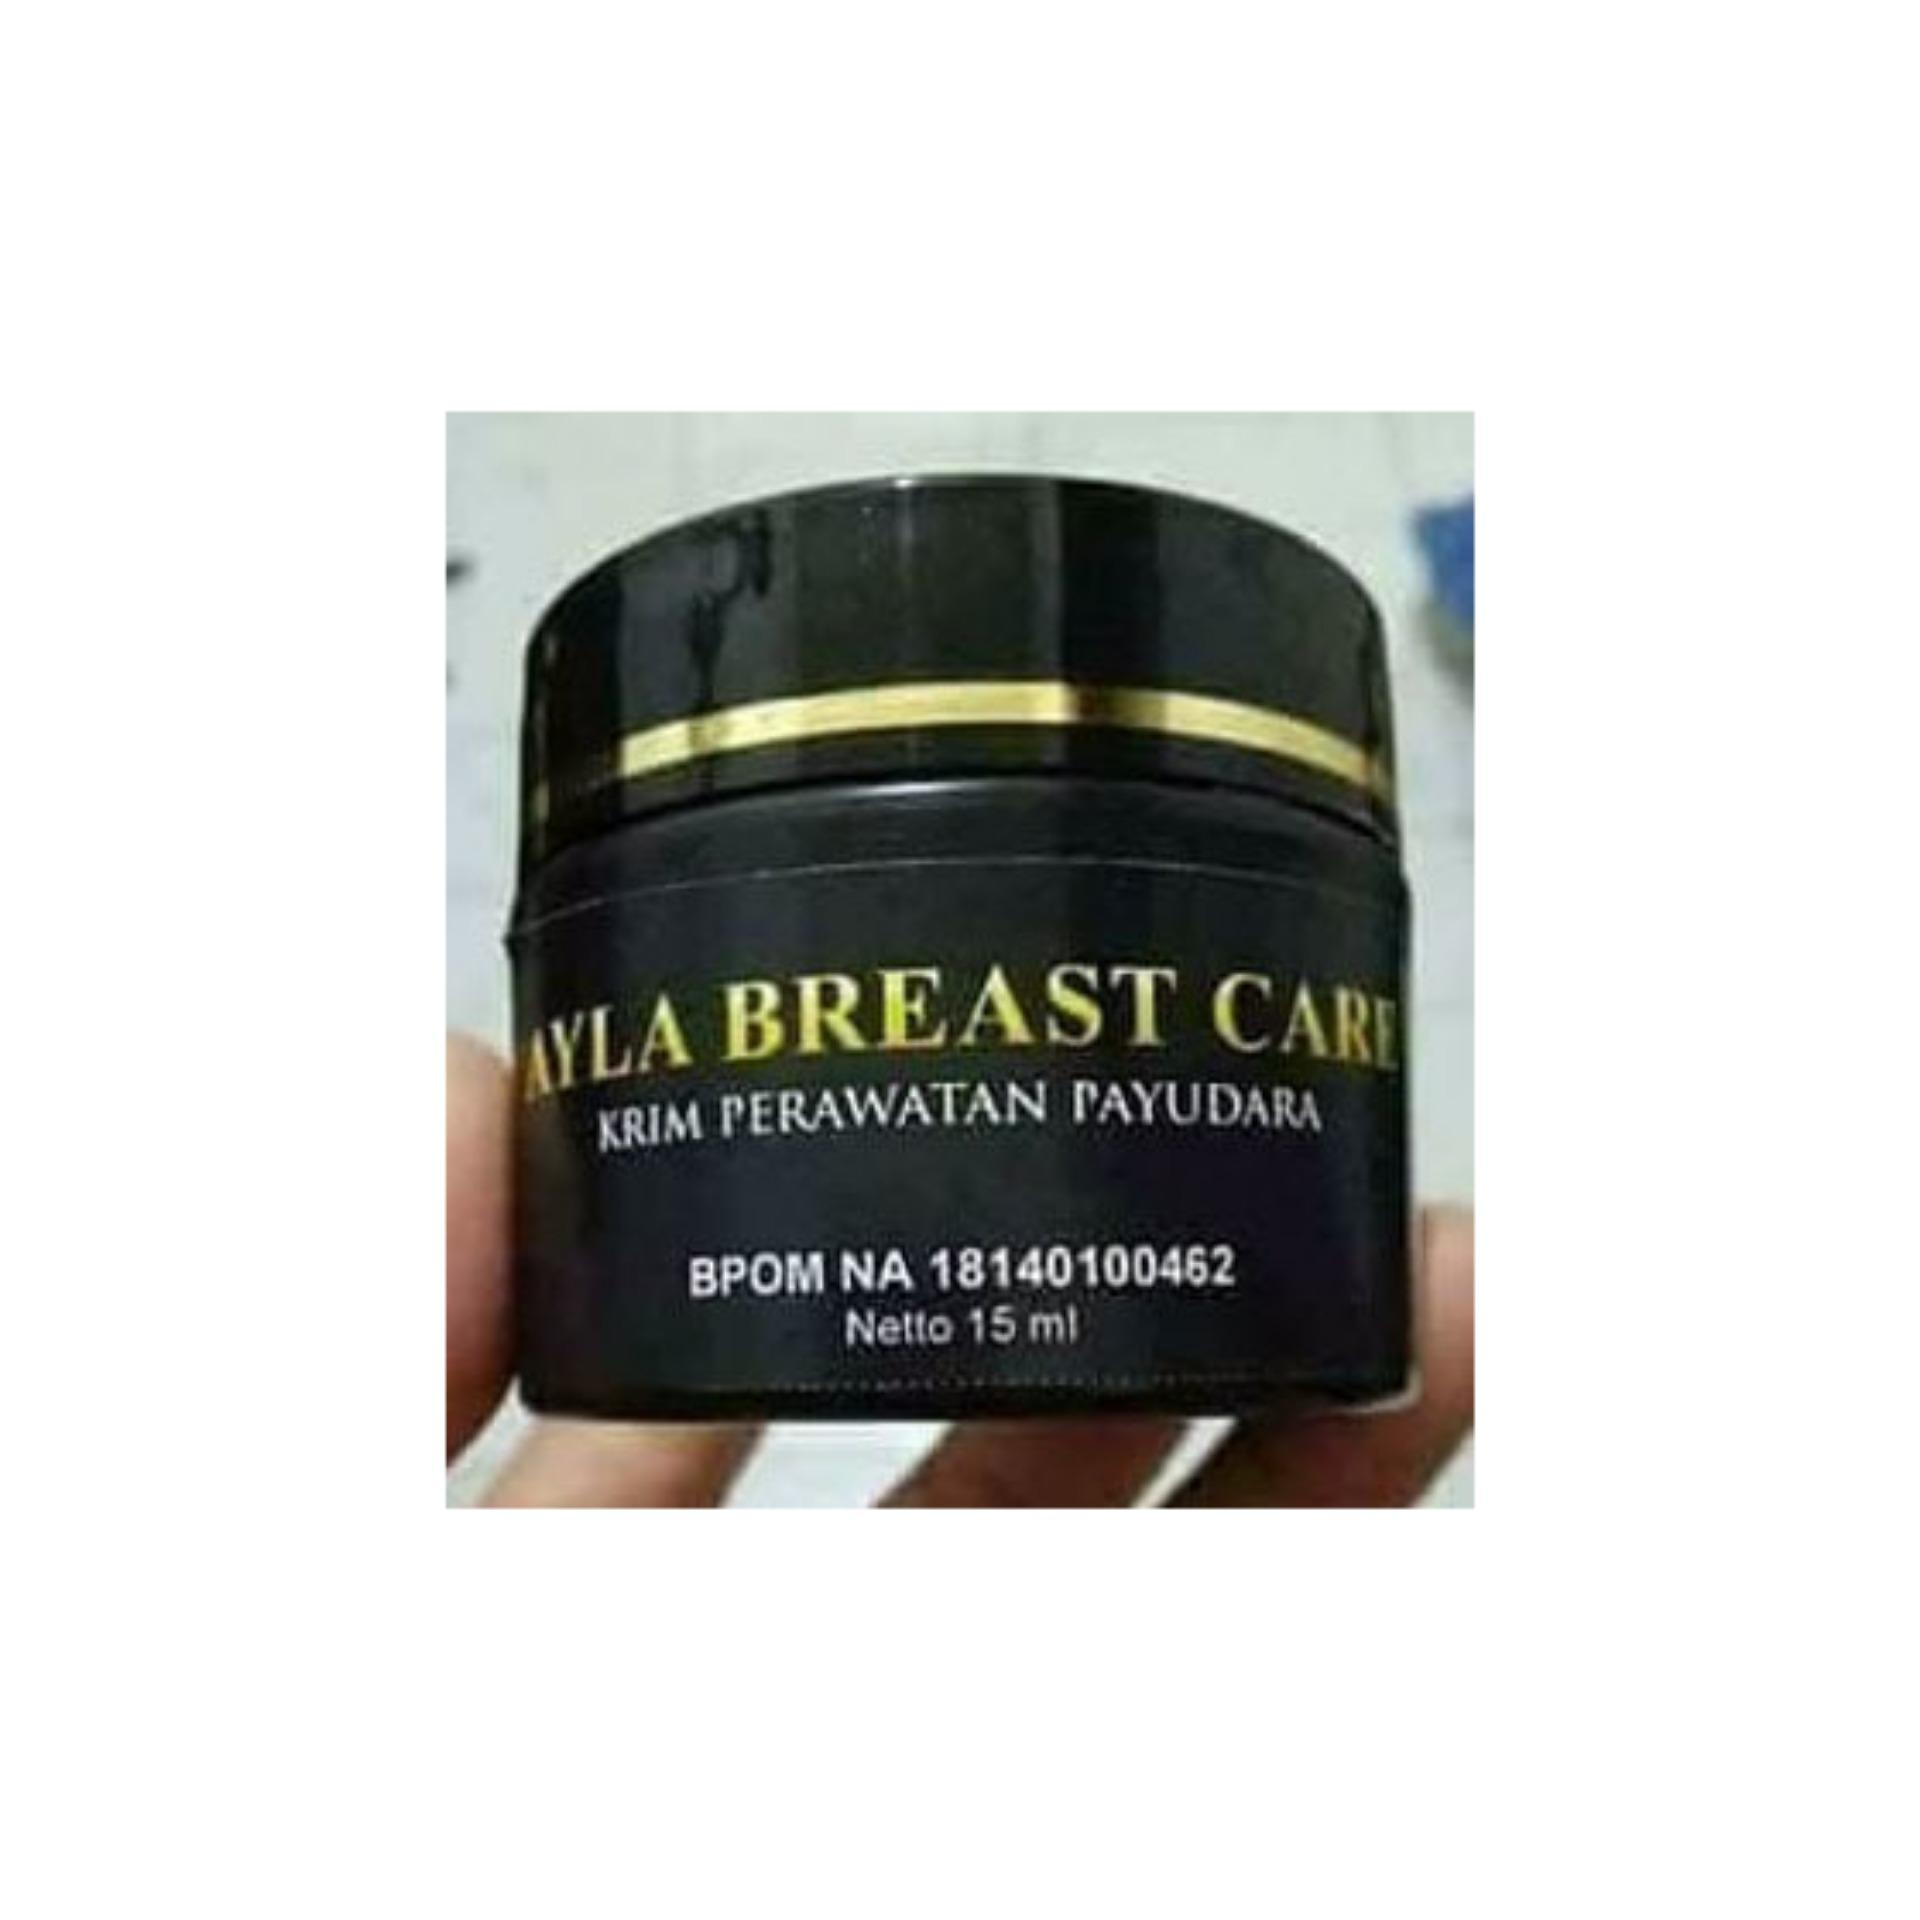 Vienna Breast Cream Bpom Krim Pembesar Pengencang Payudara 80ml 1pcs Ayla Care N 100 Original Aman